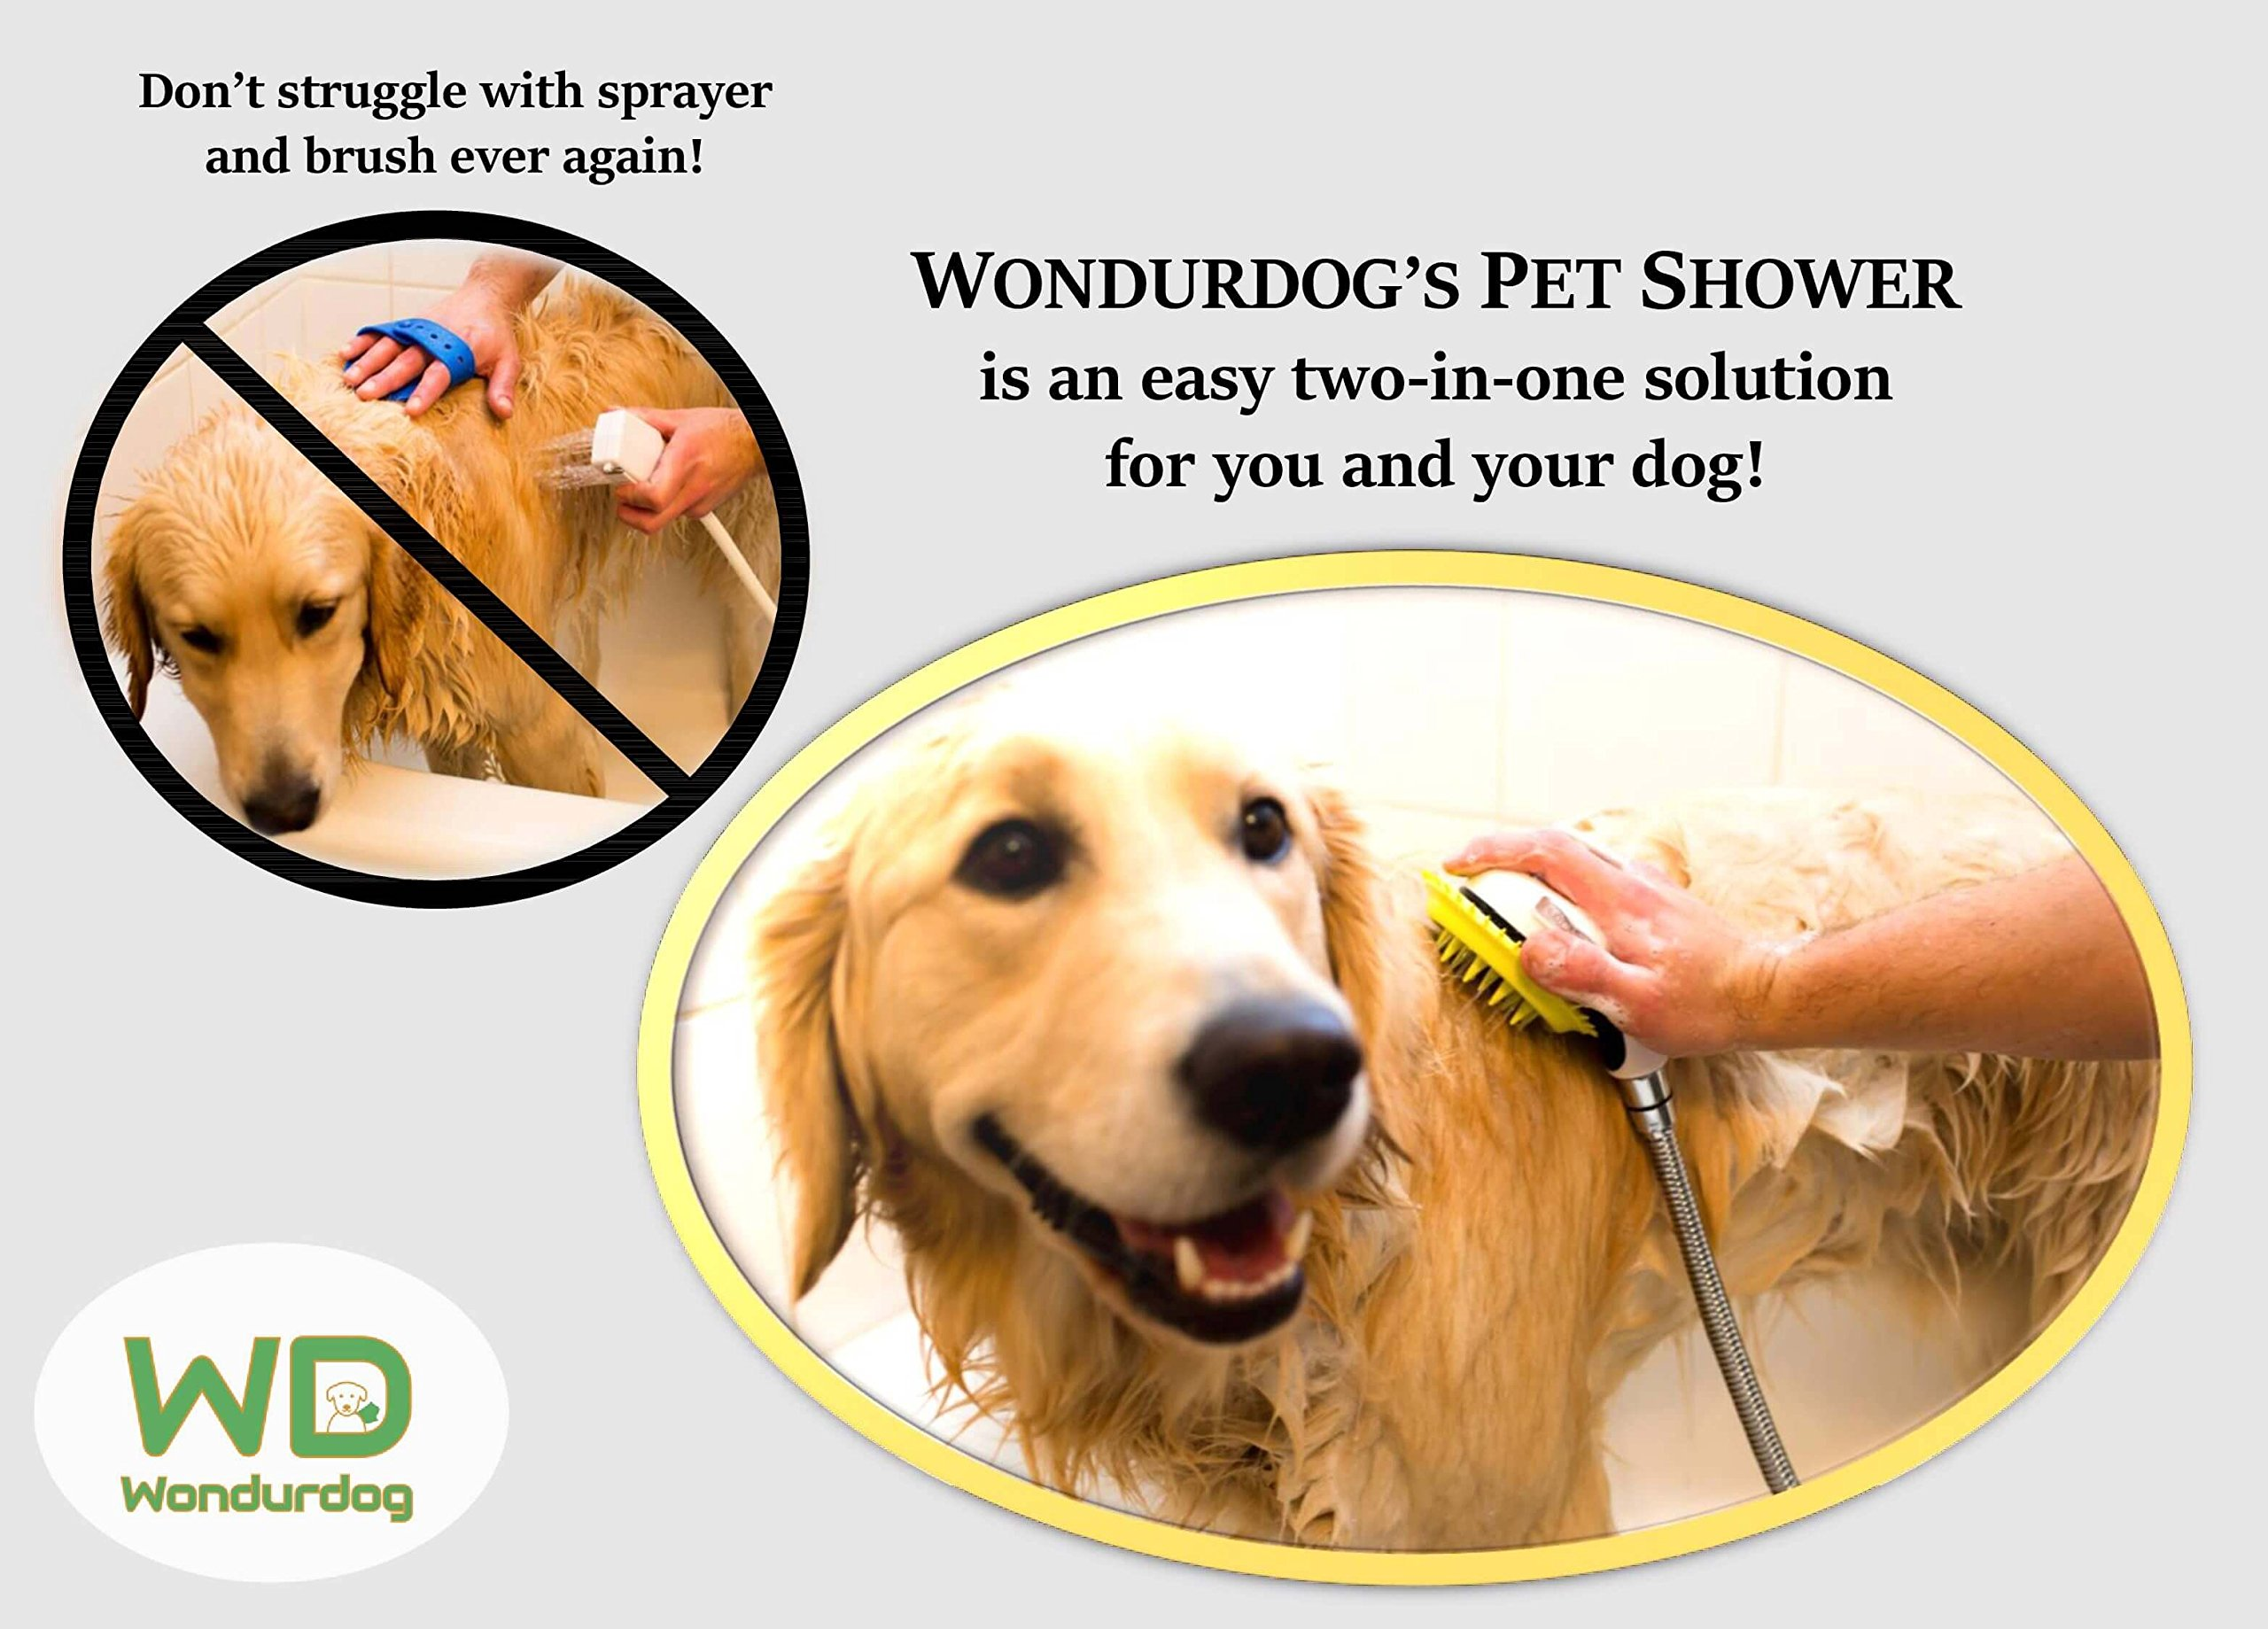 Details about All-In-One Quality Dog Shower Kit | WATER SPRAYER BRUSH  RUBBER SHIELD | 8 ft